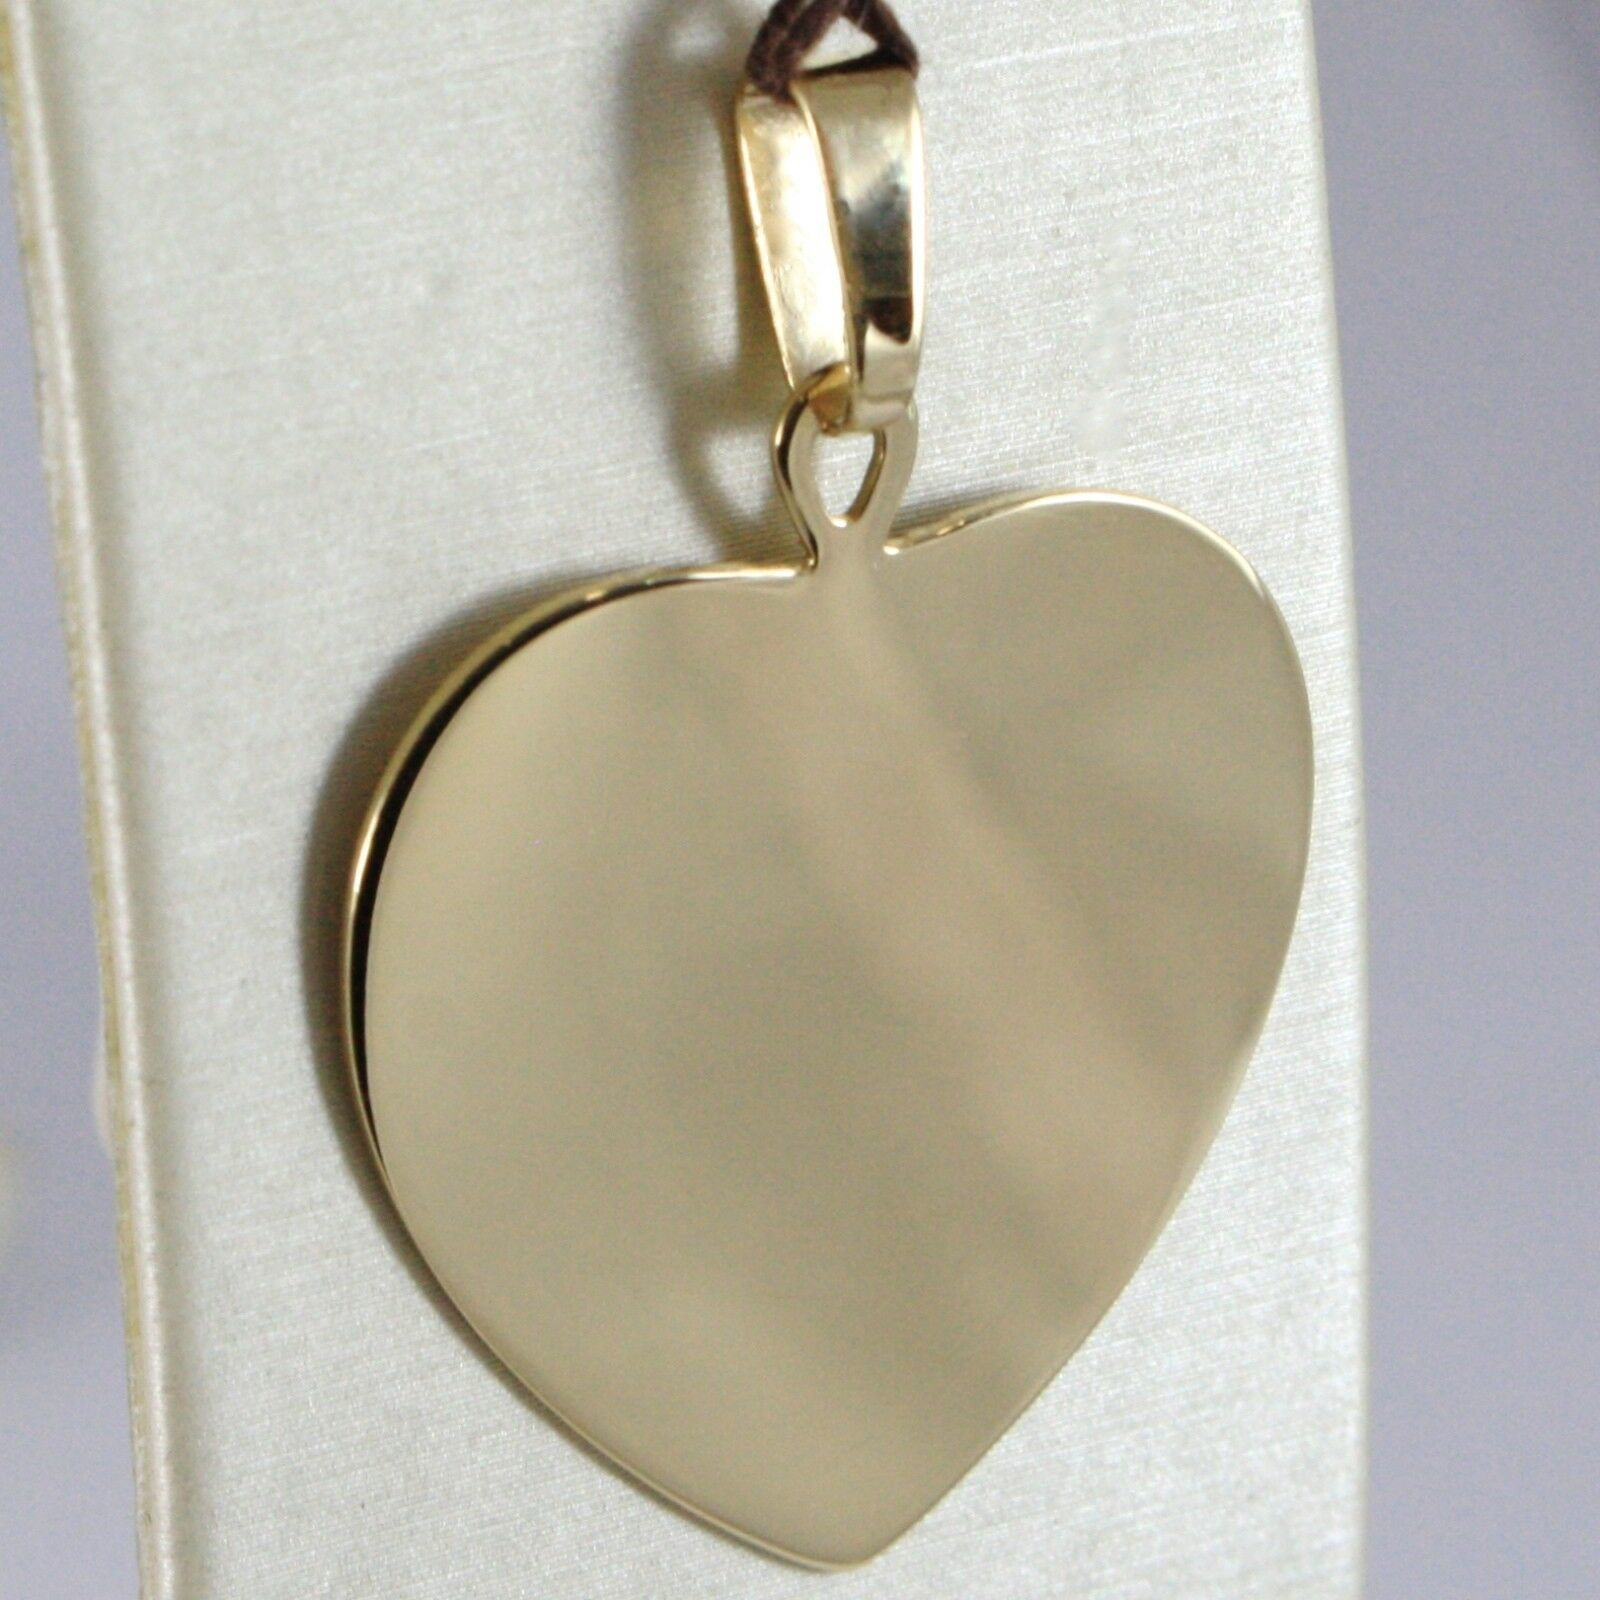 18K YELLOW GOLD HEART, PHOTO & TEXT ENGRAVED PERSONALIZED PENDANT 30 MM, MEDAL